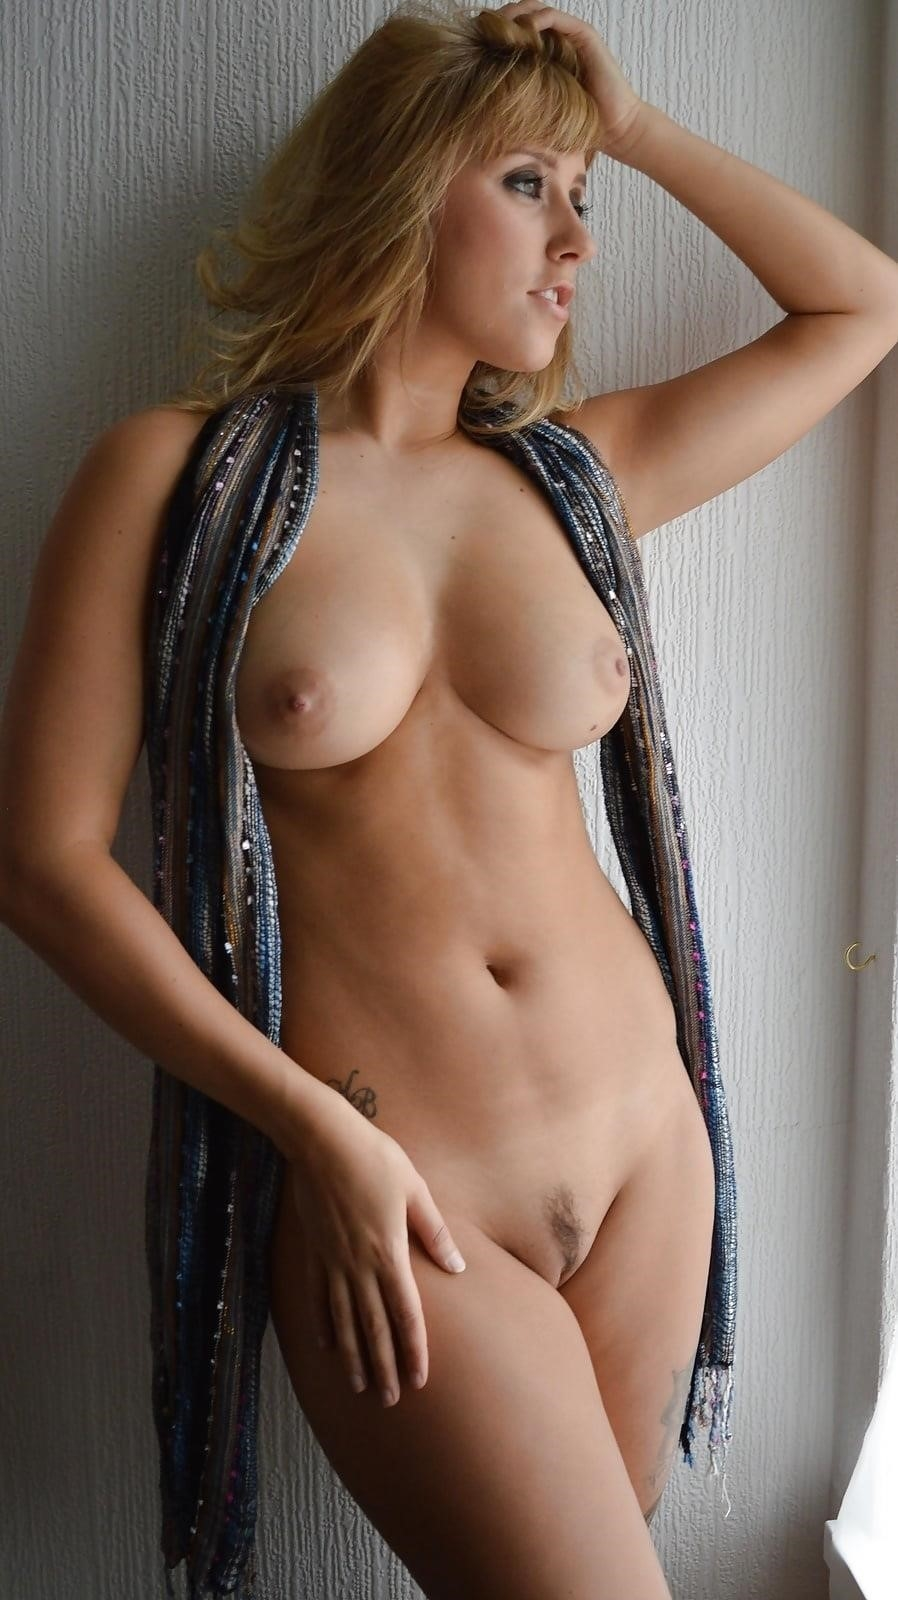 Real hot girls nude-1321